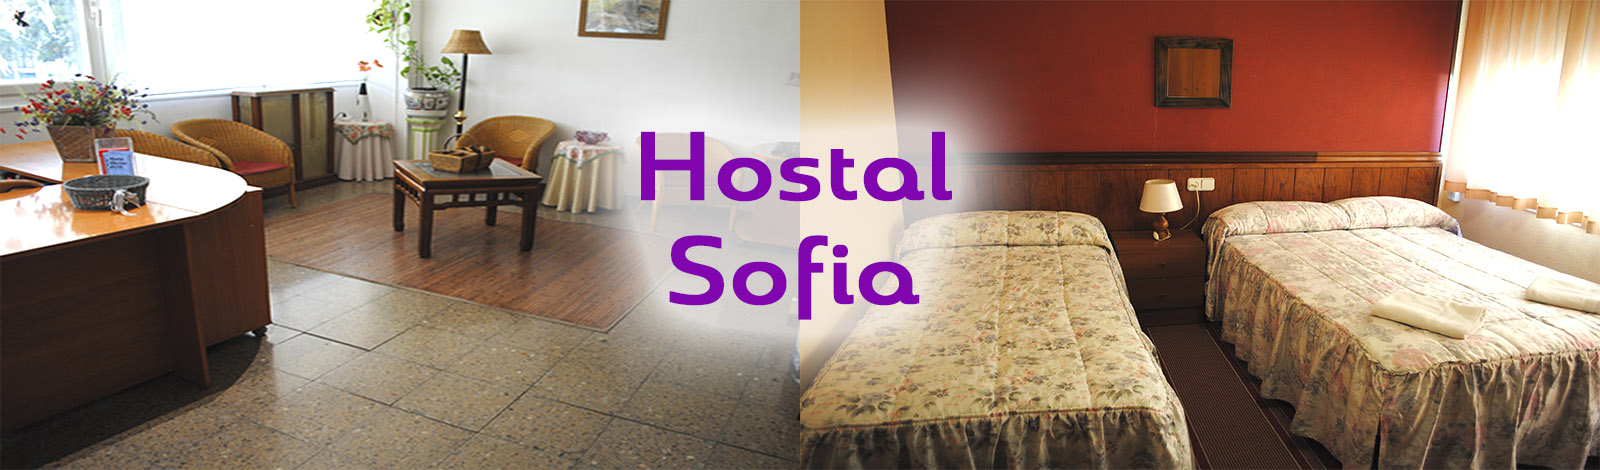 slider-hostal-sofia01